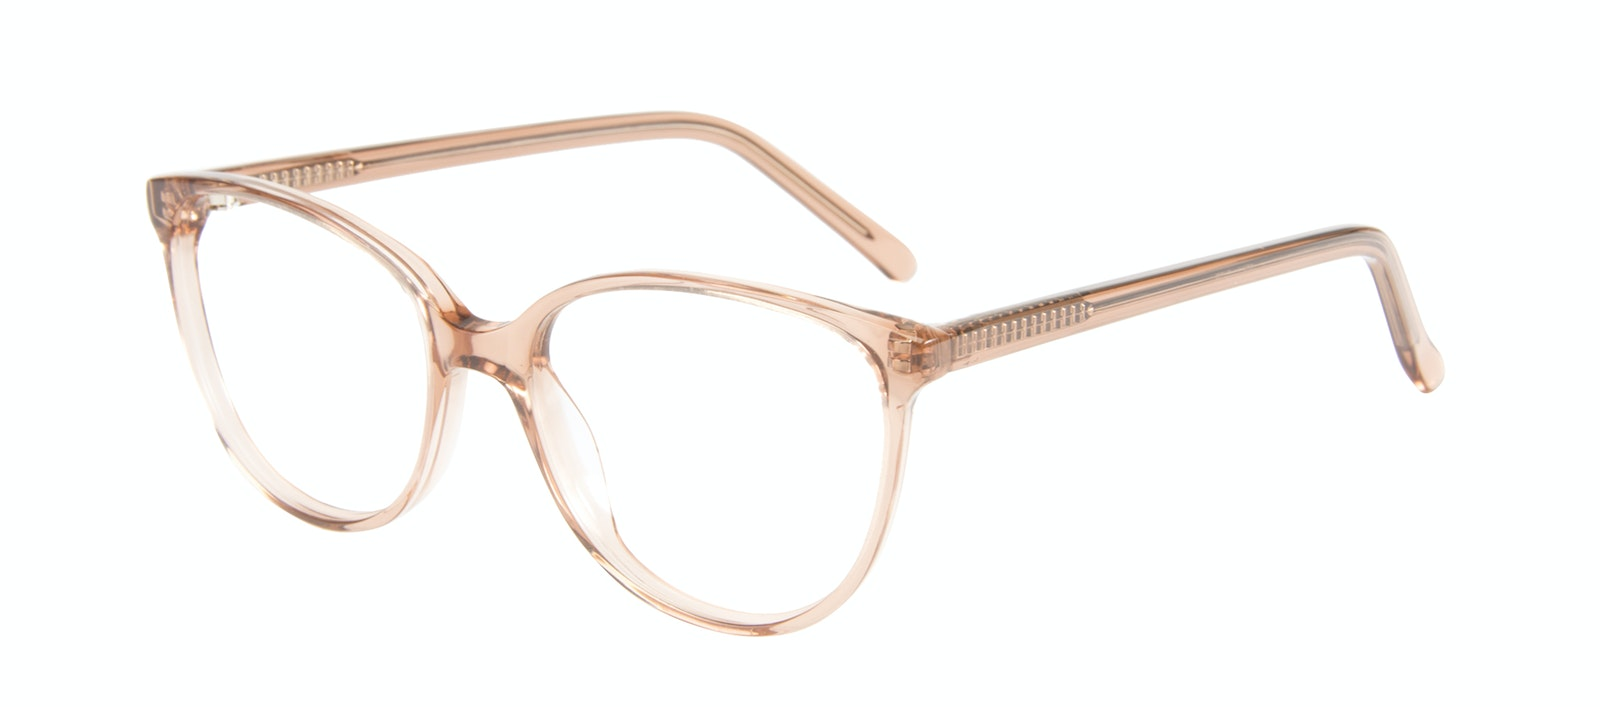 Affordable Fashion Glasses Round Eyeglasses Women Imagine Petite Rose Tilt